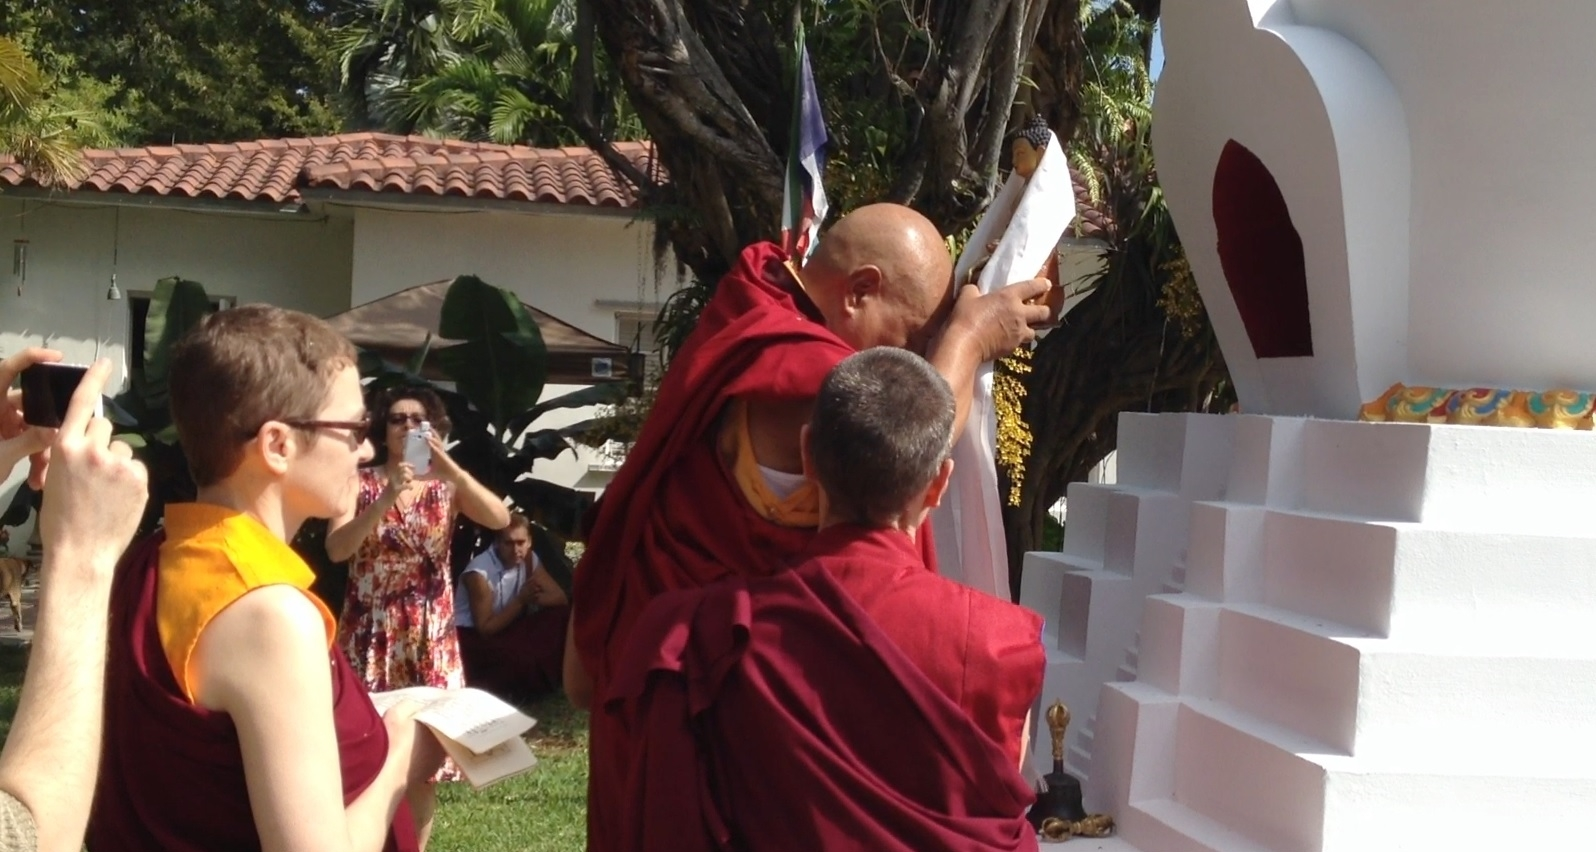 miami buddhist personals Buddhist dating for jacksonville buddhist singles meet buddhist singles from jacksonville online now registration is 100% free.